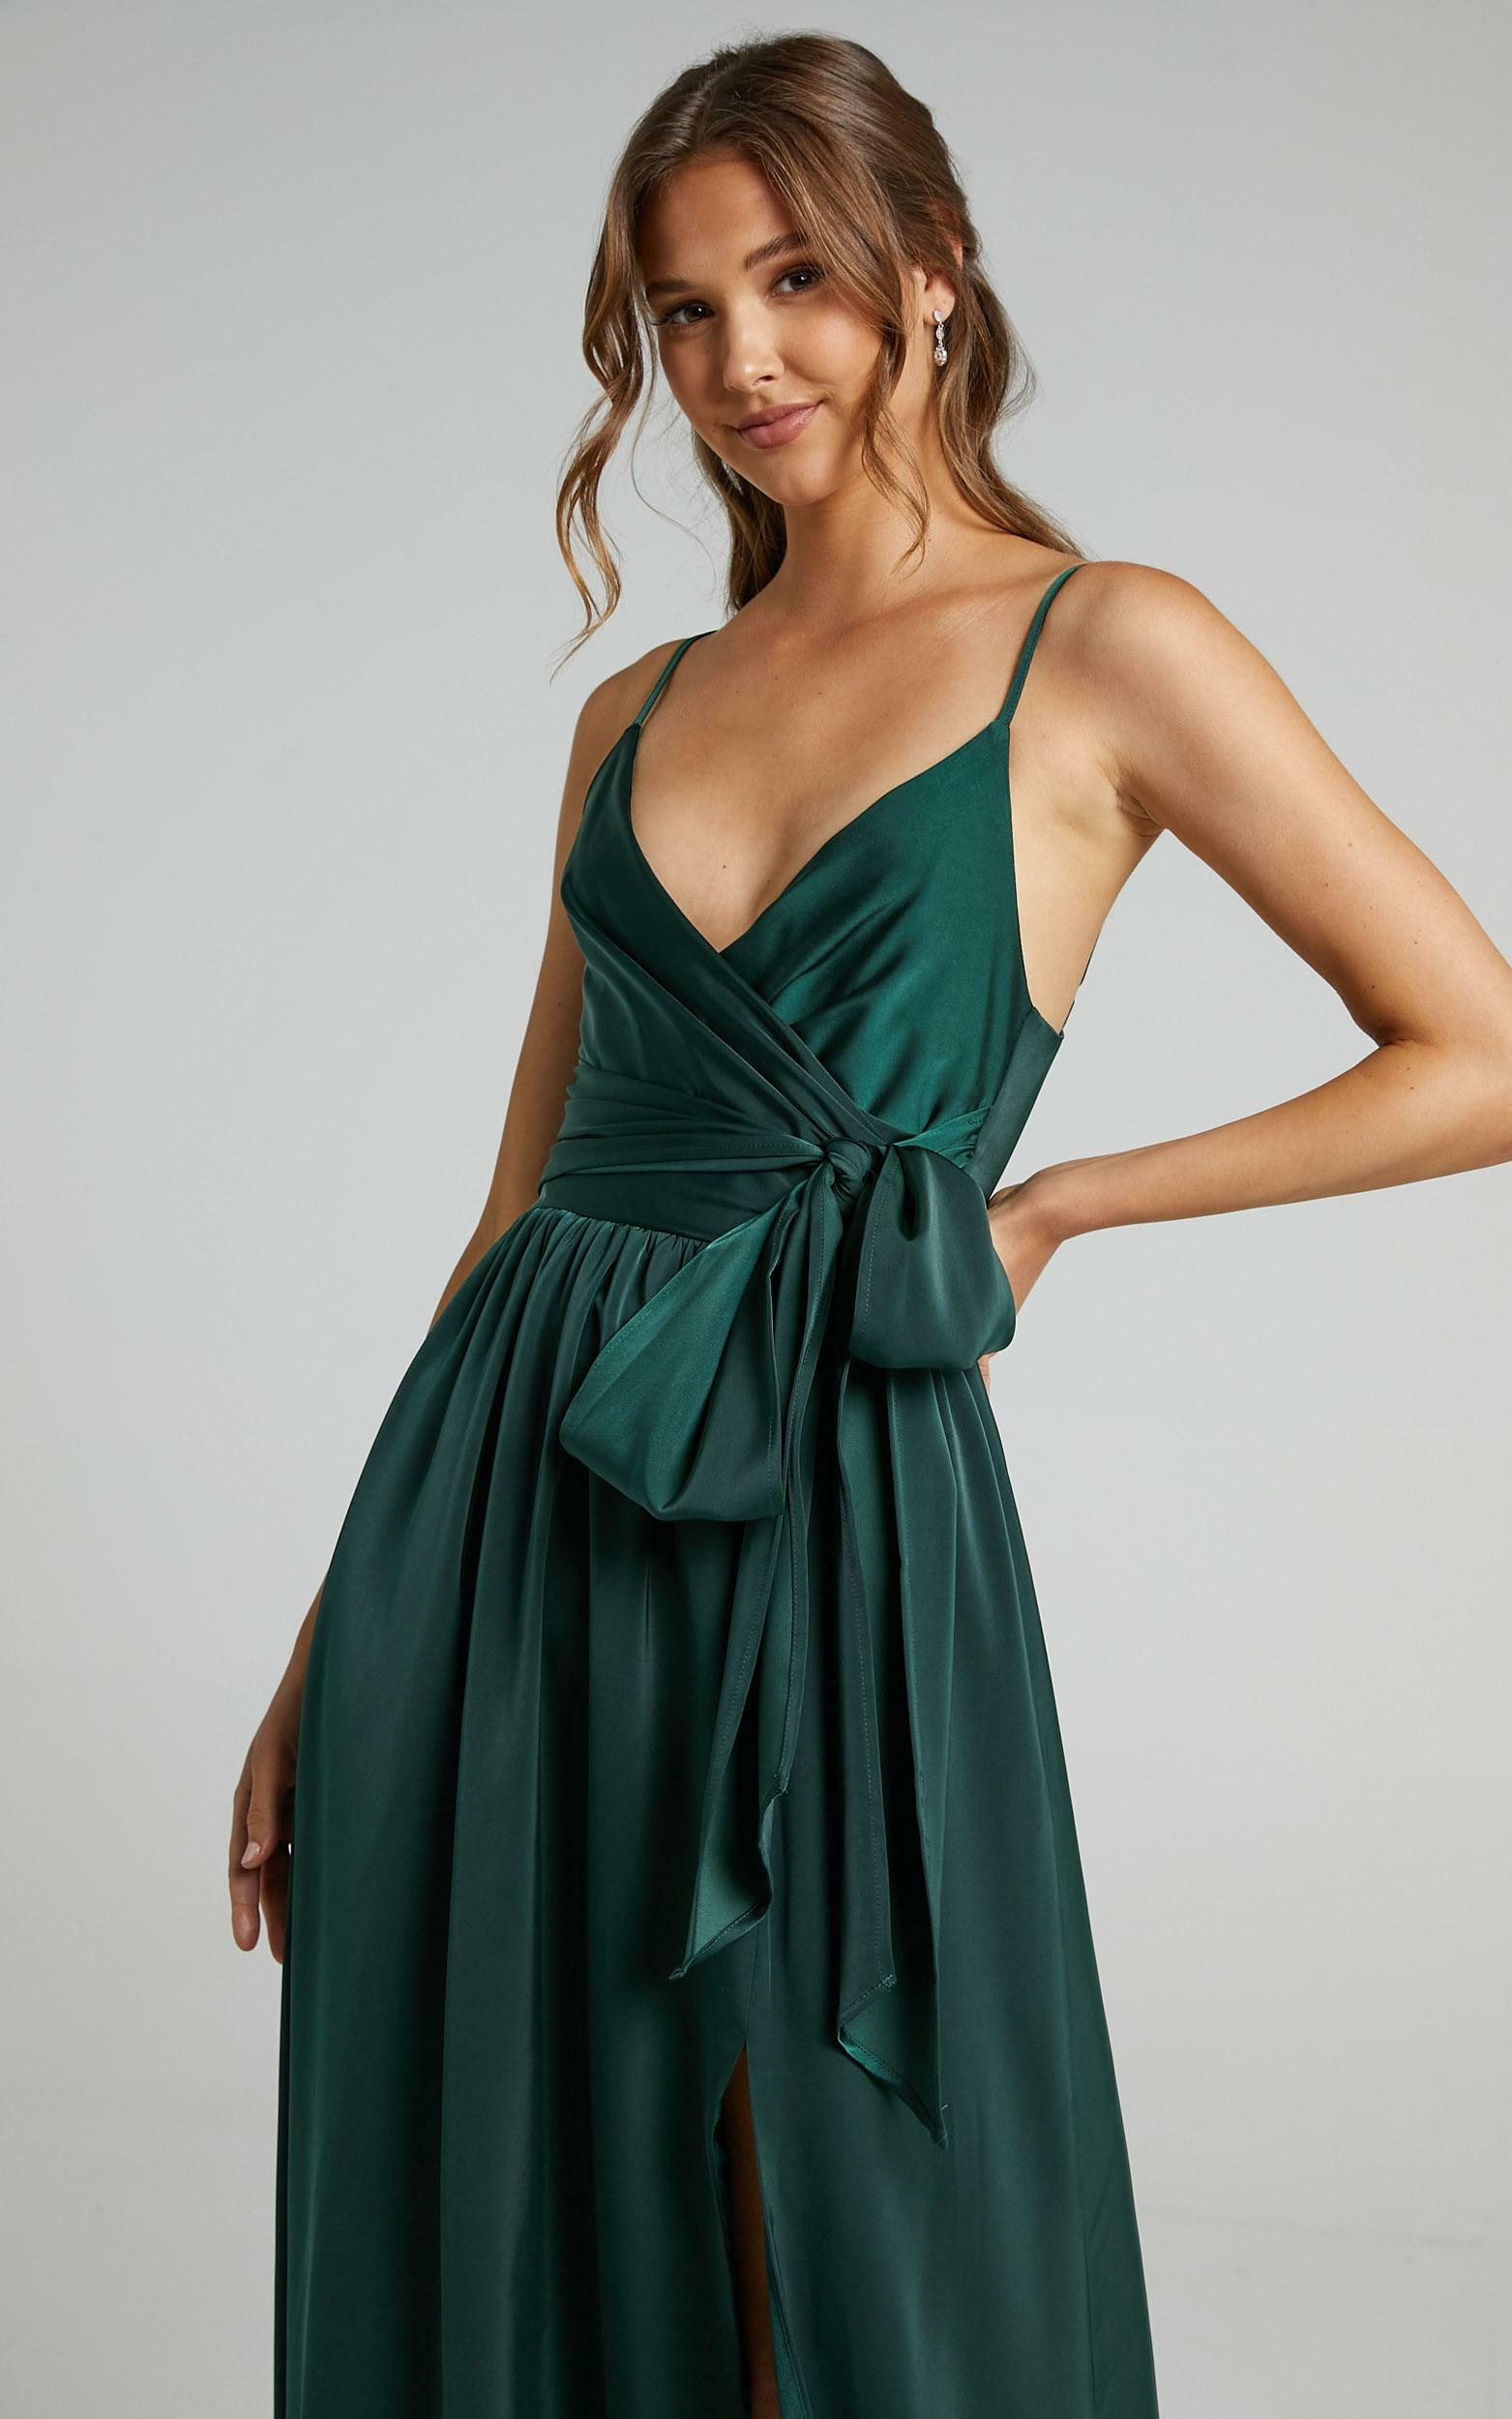 Revolve Around Me Dress in Emerald - 12, GRN3, hi-res image number null